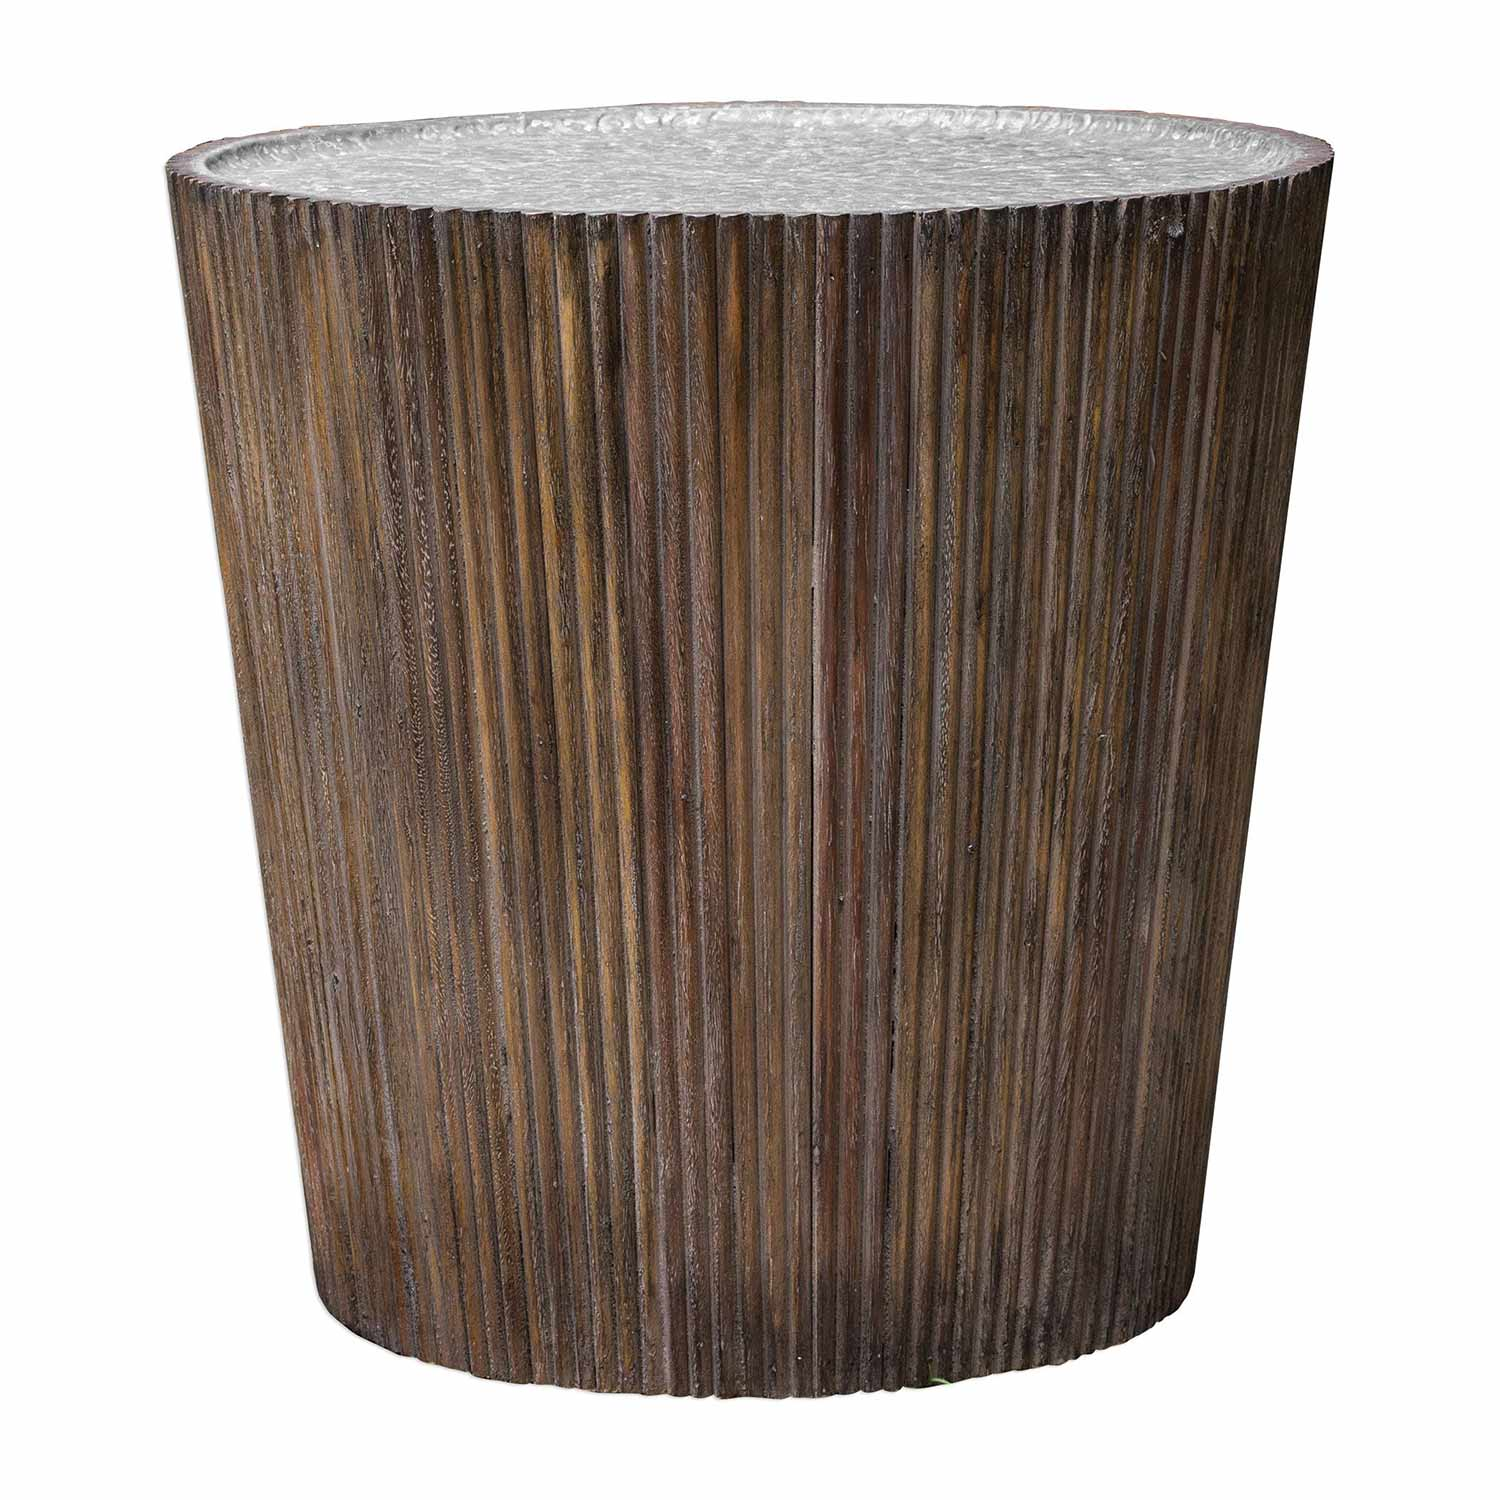 Uttermost Amra Round Accent Table - Reeded